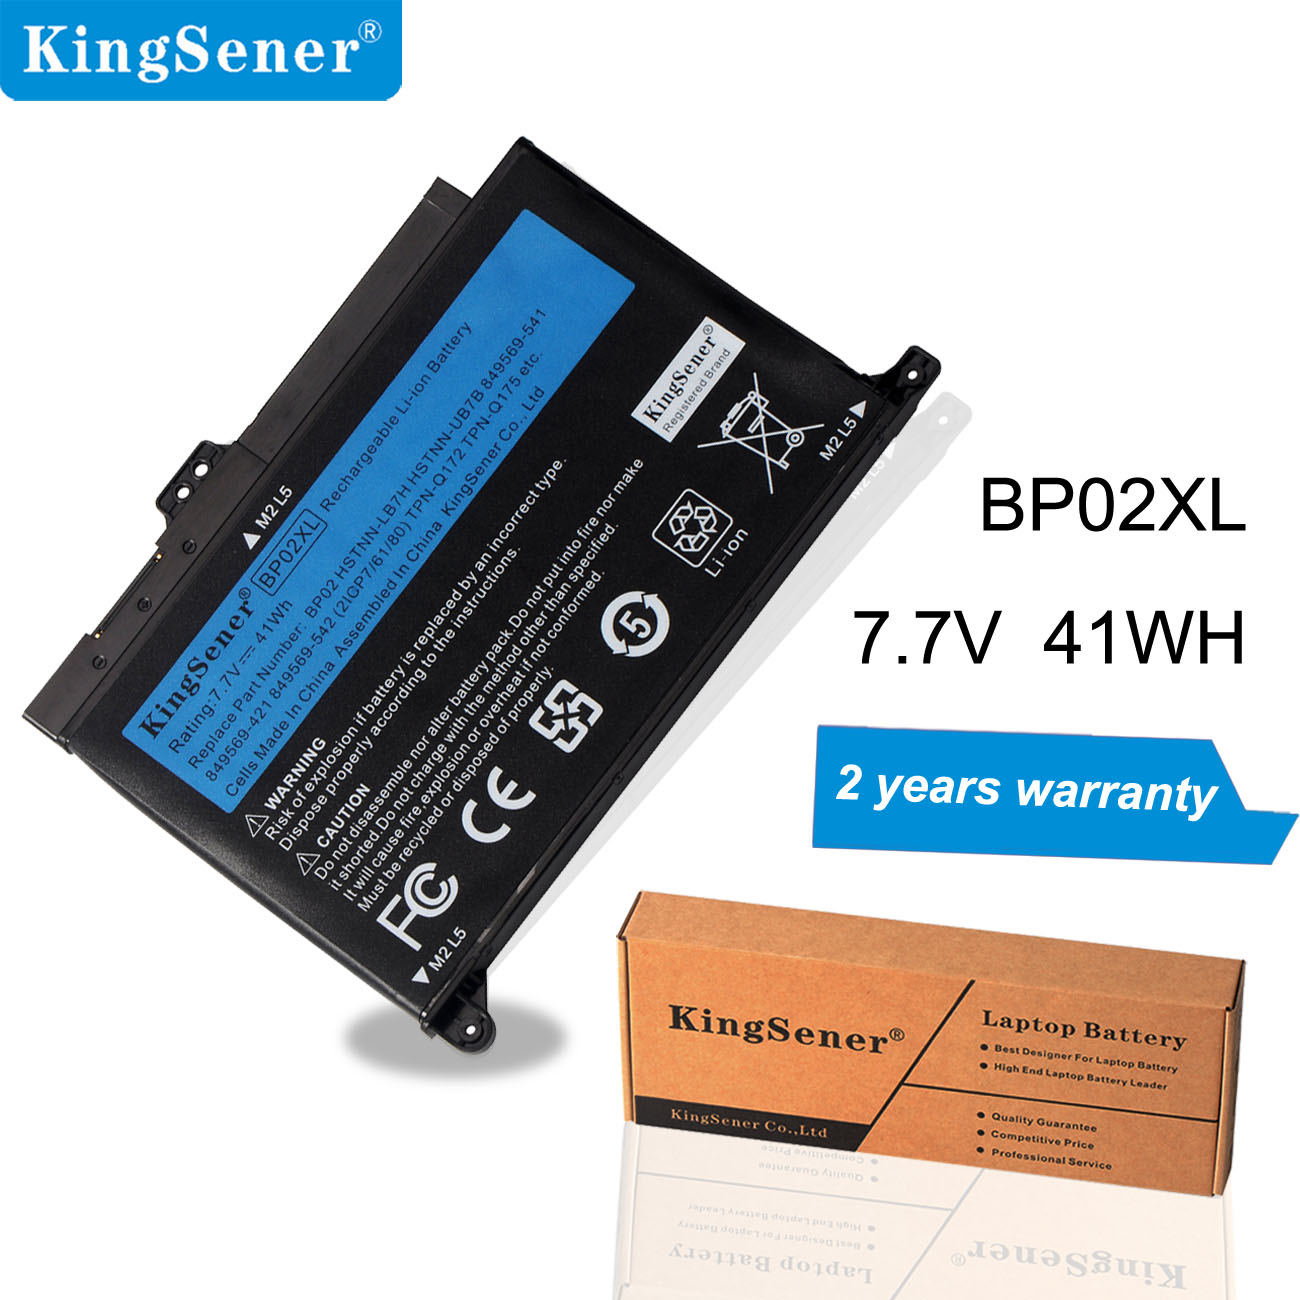 KingSener 7.7V 41WH 5150mAh Laptop BP02XL Battery For HP Pavilion PC 15 15-AU 849909-850 (F9-21) 849569-421 HSTNN-LB7H BP02041XL